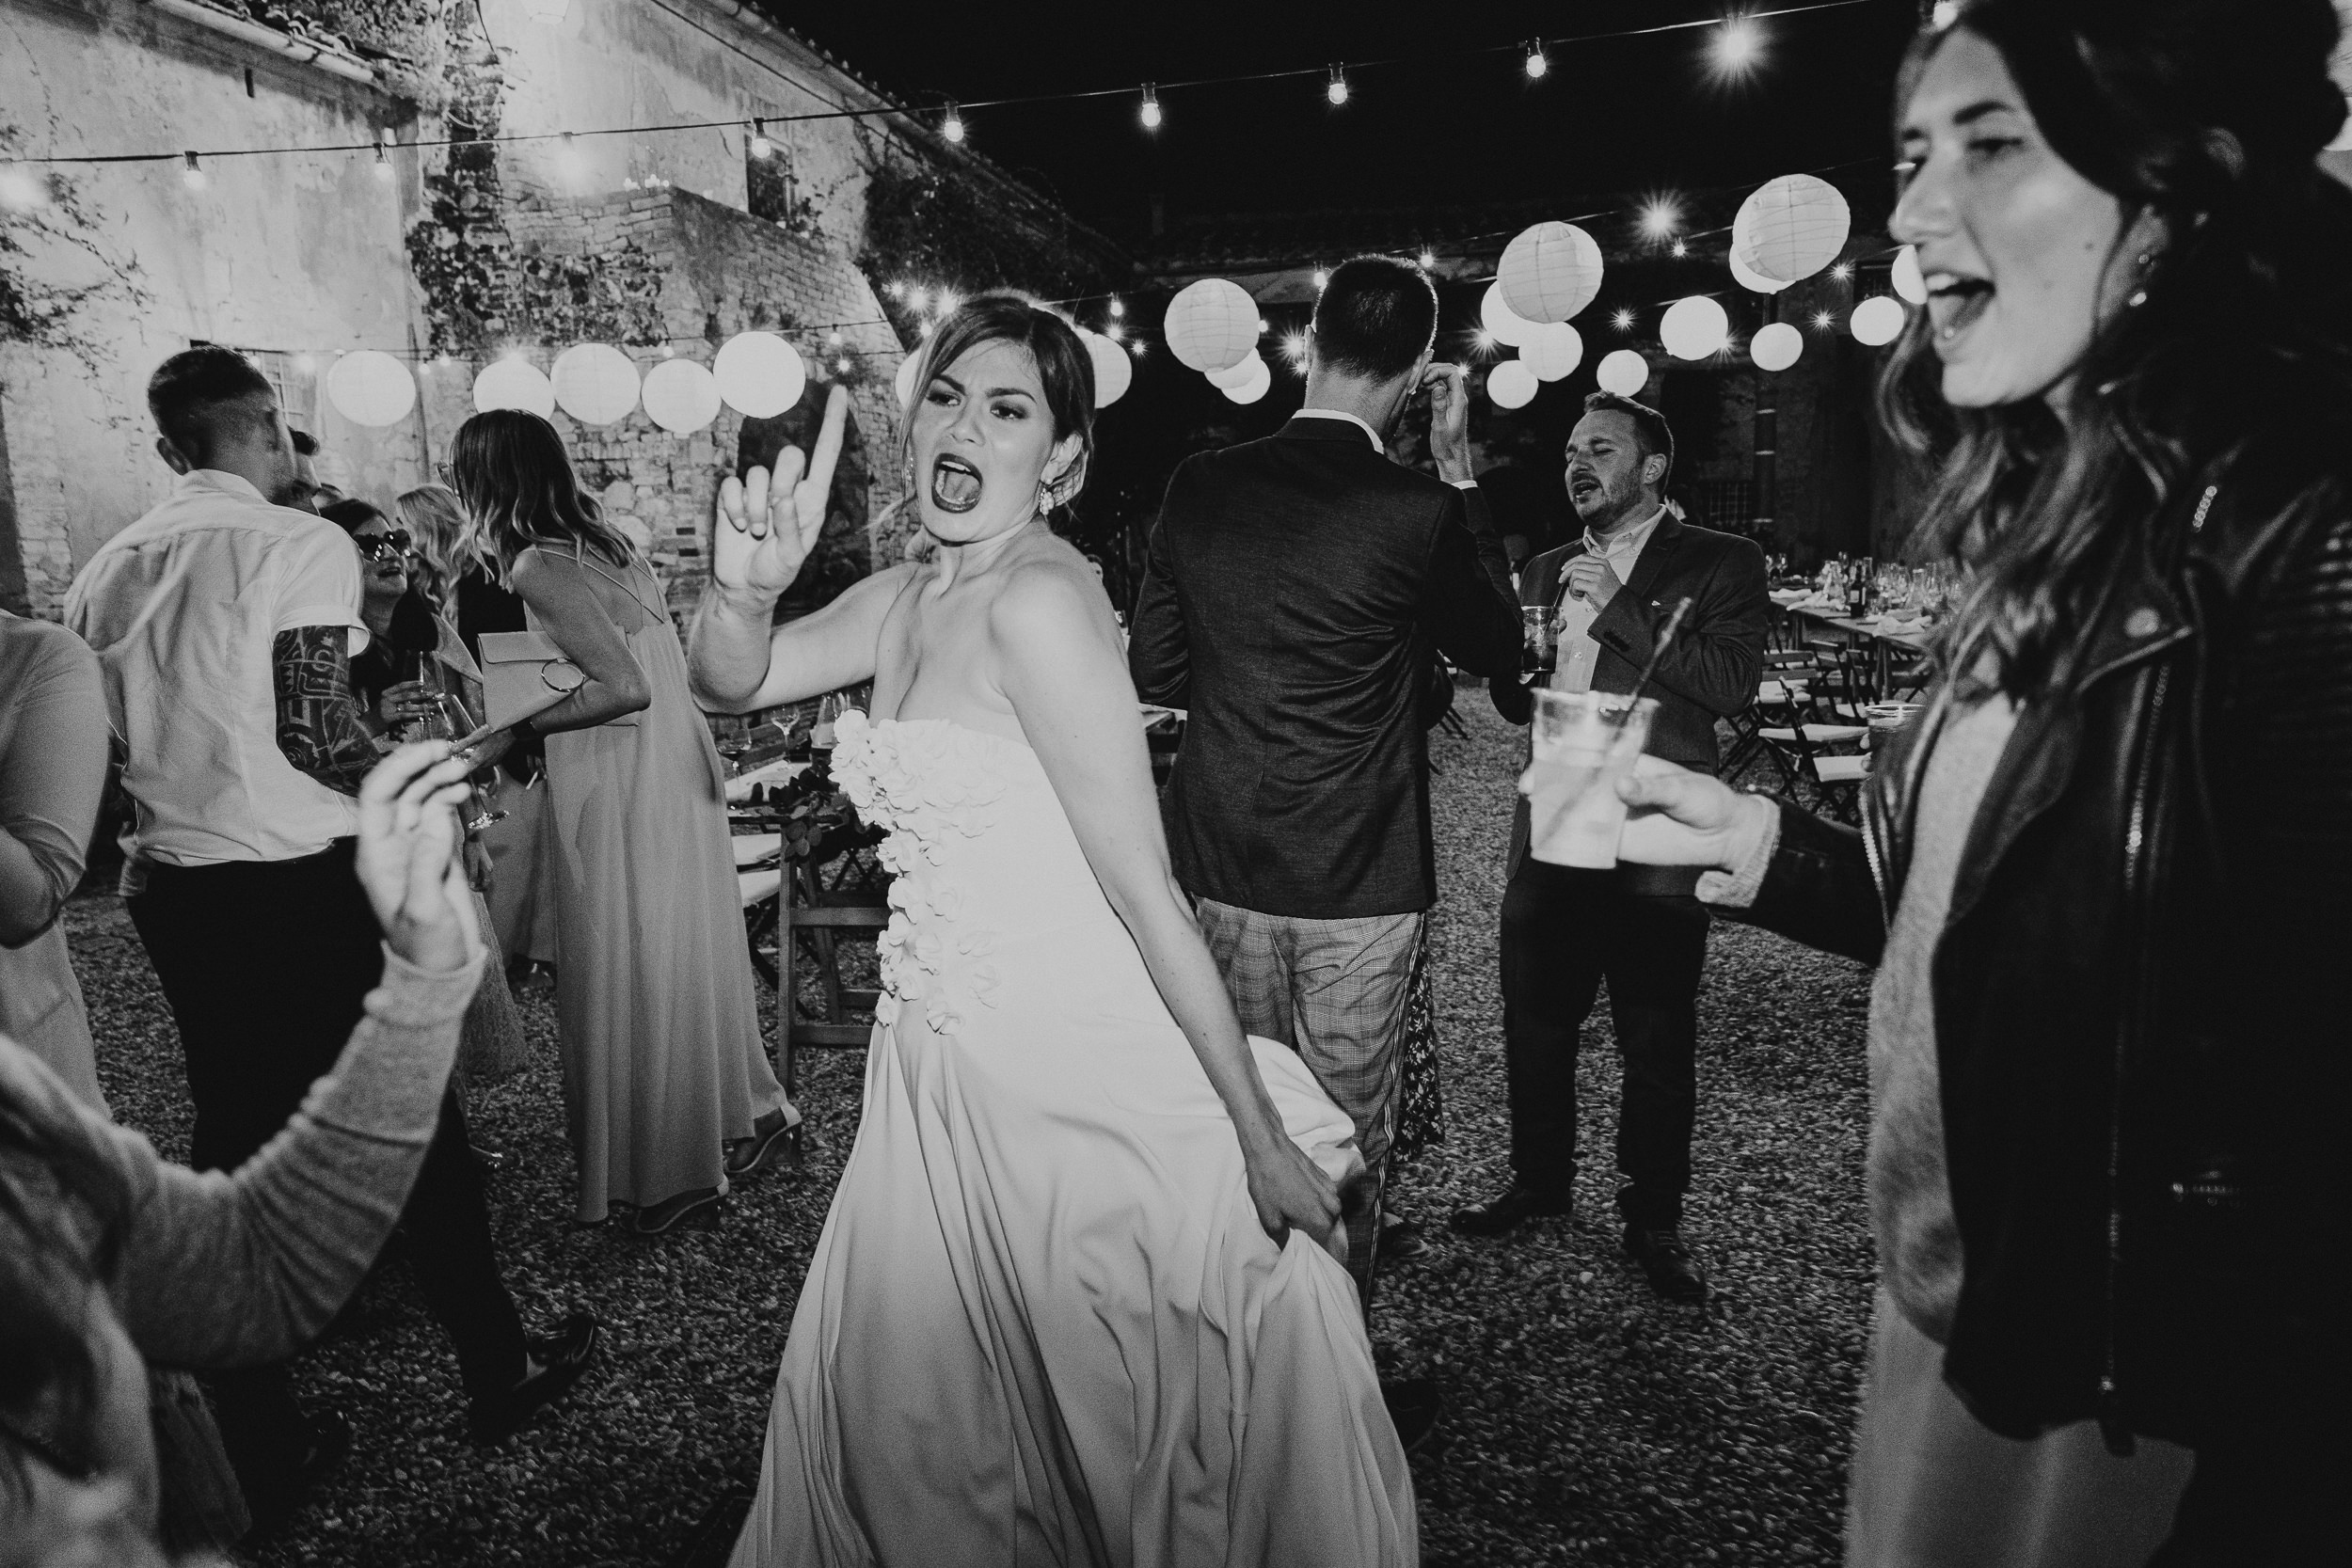 The Bride on the dancefloor